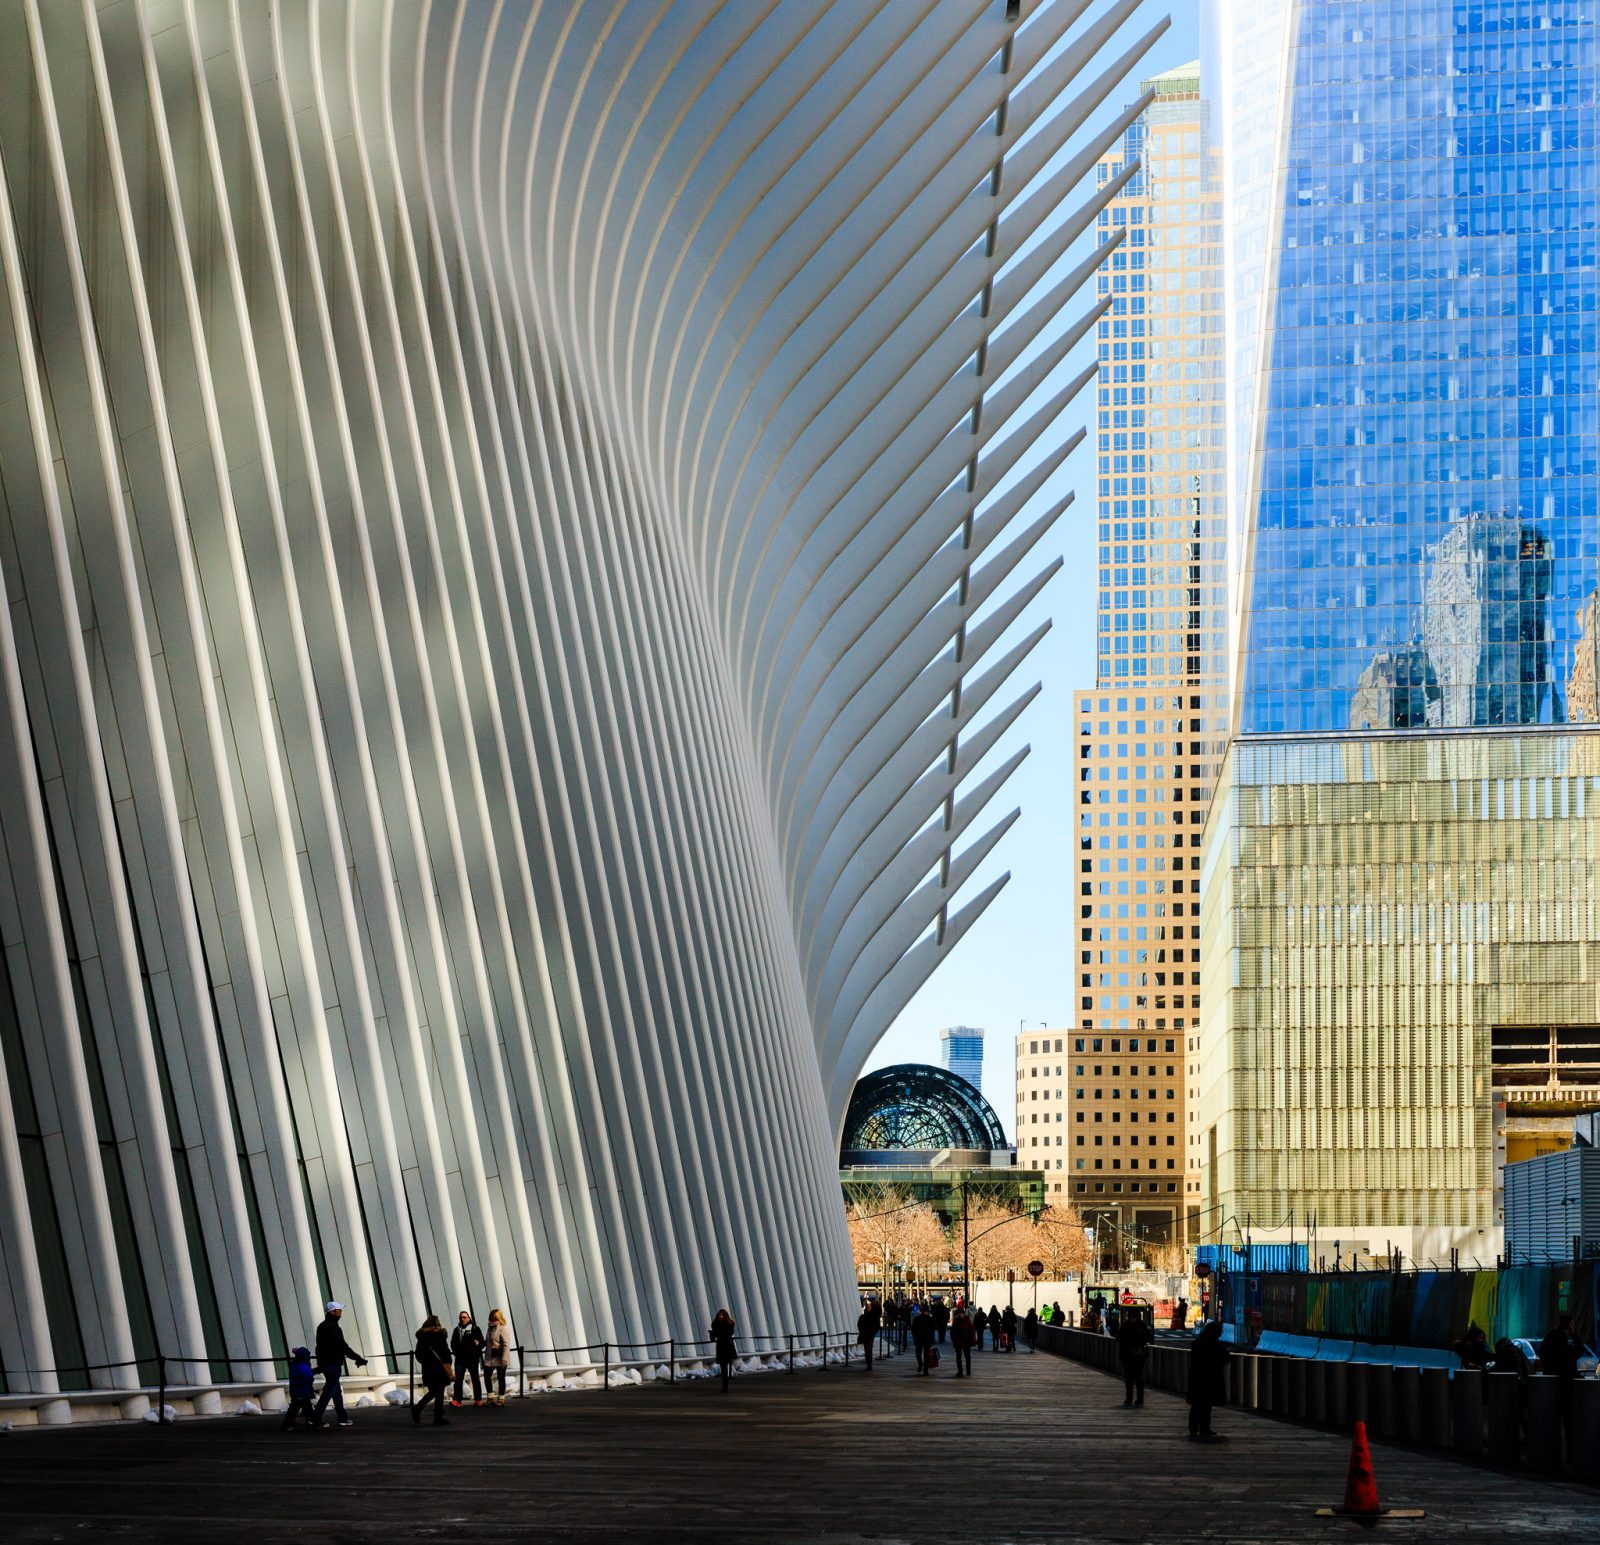 Oculus and WTC Transportation Hub